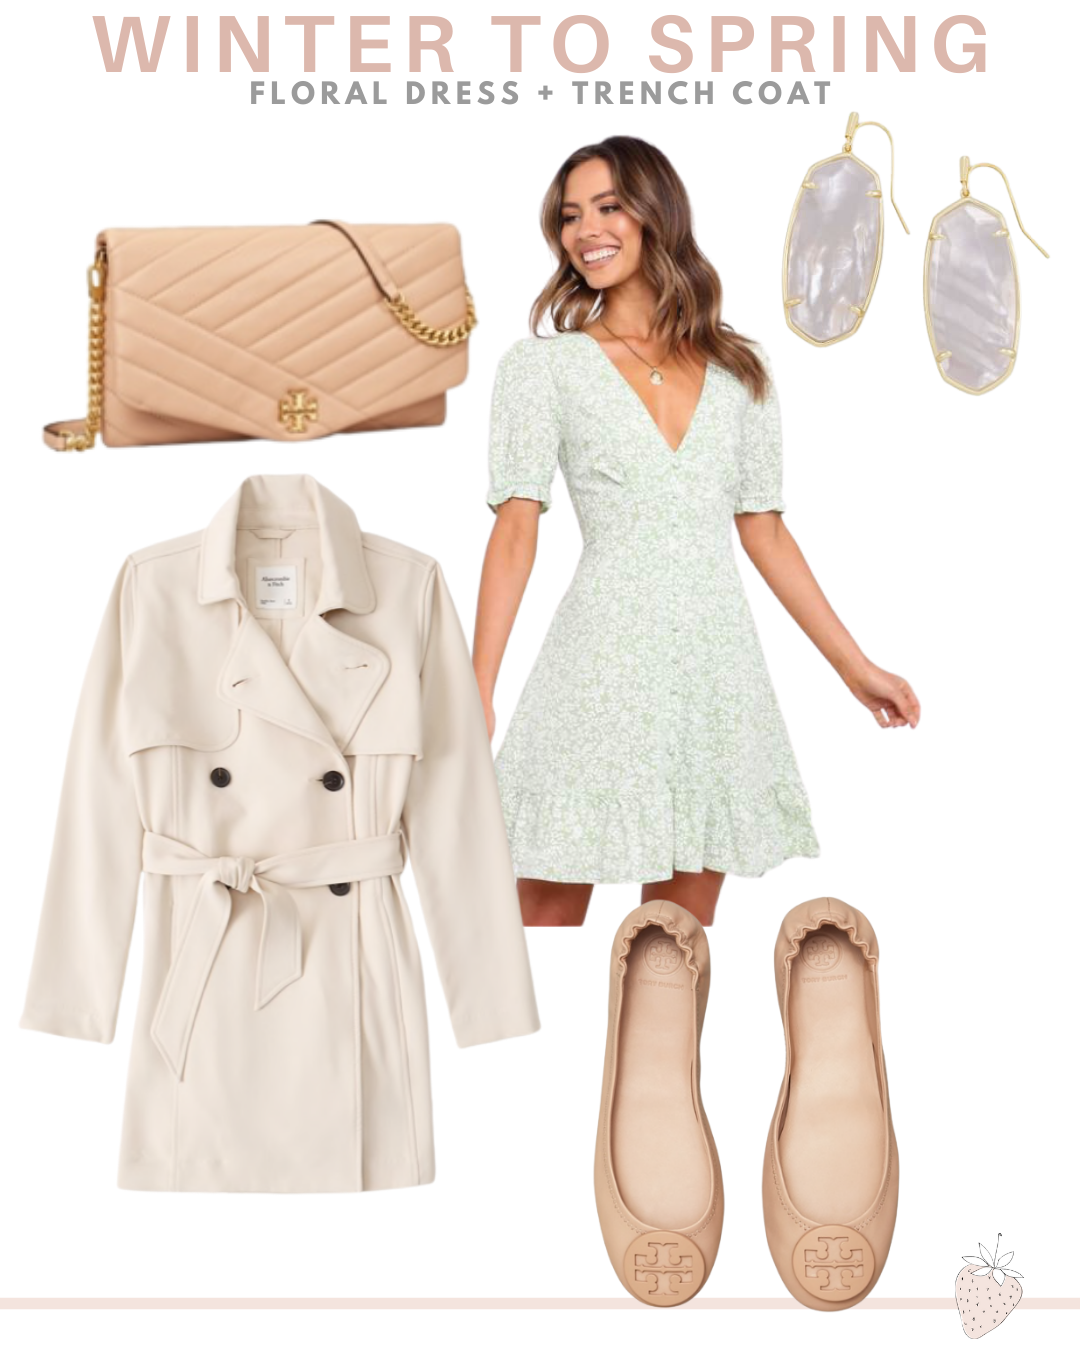 5 Transitional Winter to Spring Looks | floral dress and trench coat outfit